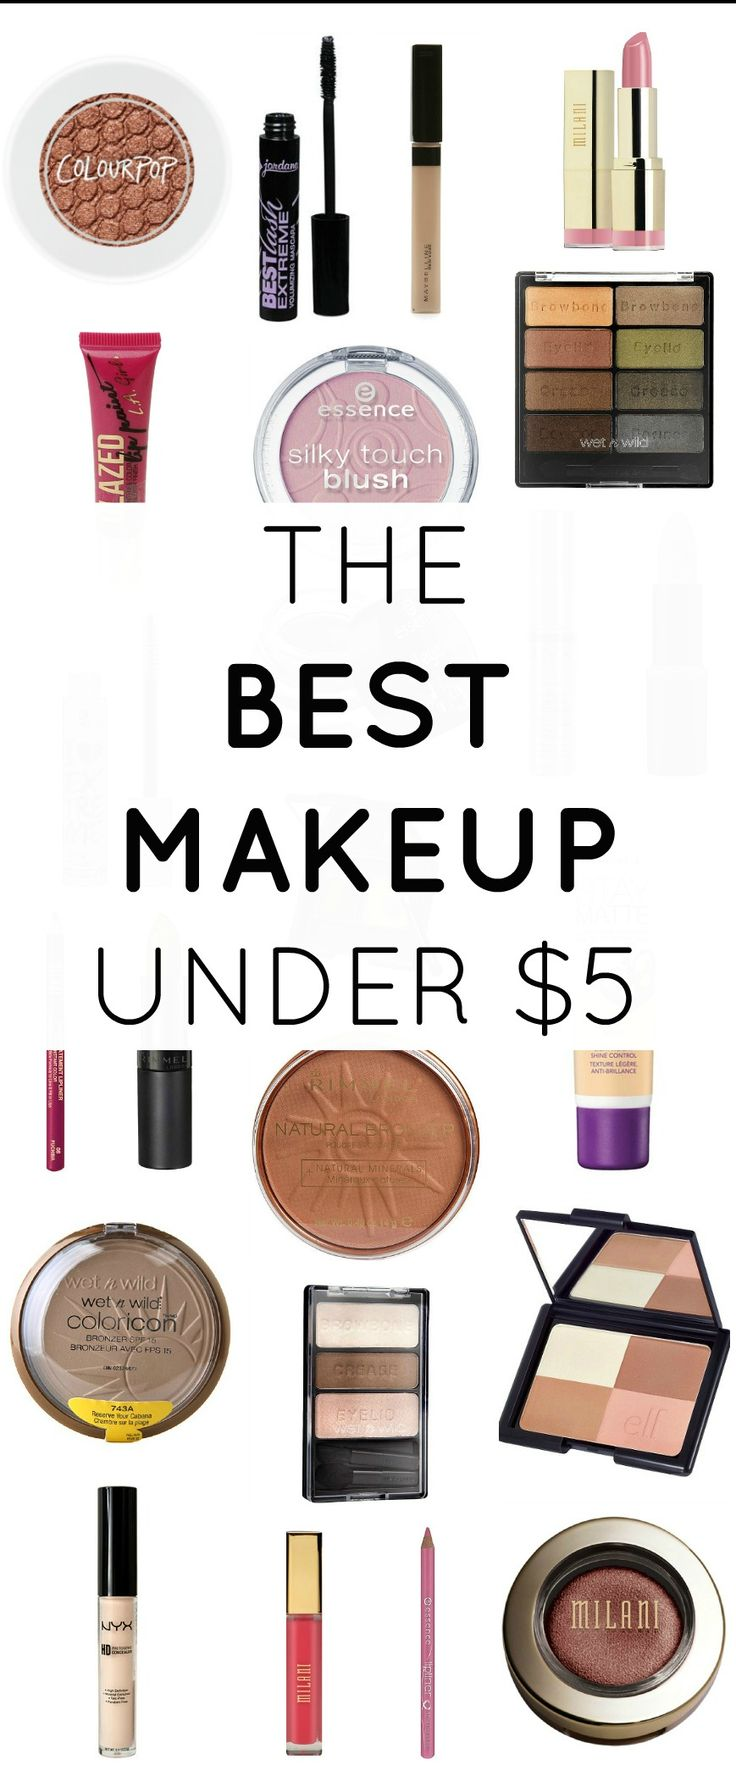 Great makeup doesn't have to cost a fortune. This post shares the BEST drugstore makeup products, and they're all under $5!   by @ashleynicholas at ashleybrookenicholas.com